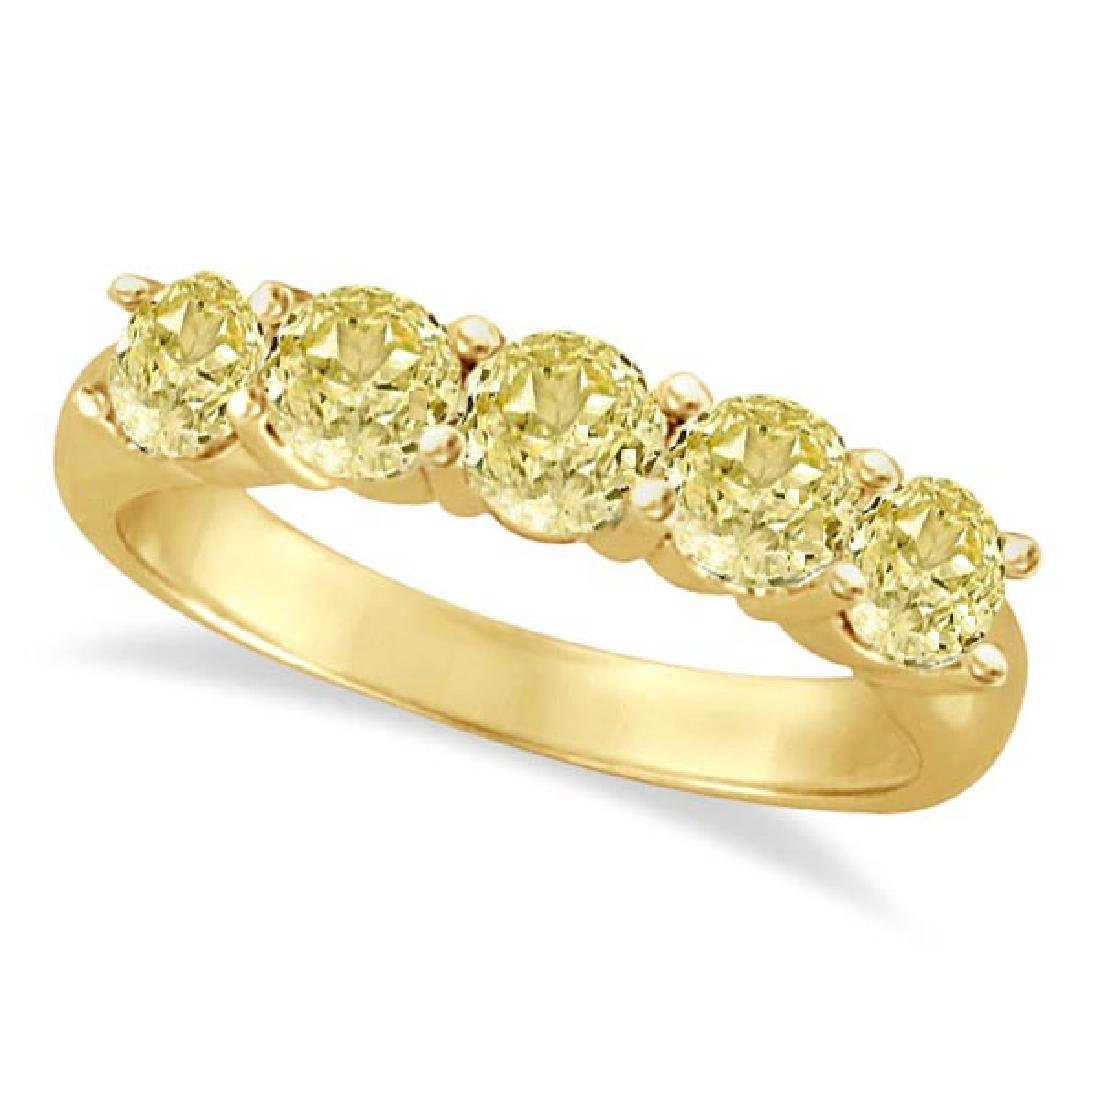 Five Stone Fancy Yellow Canary Diamond Anniversary Ring